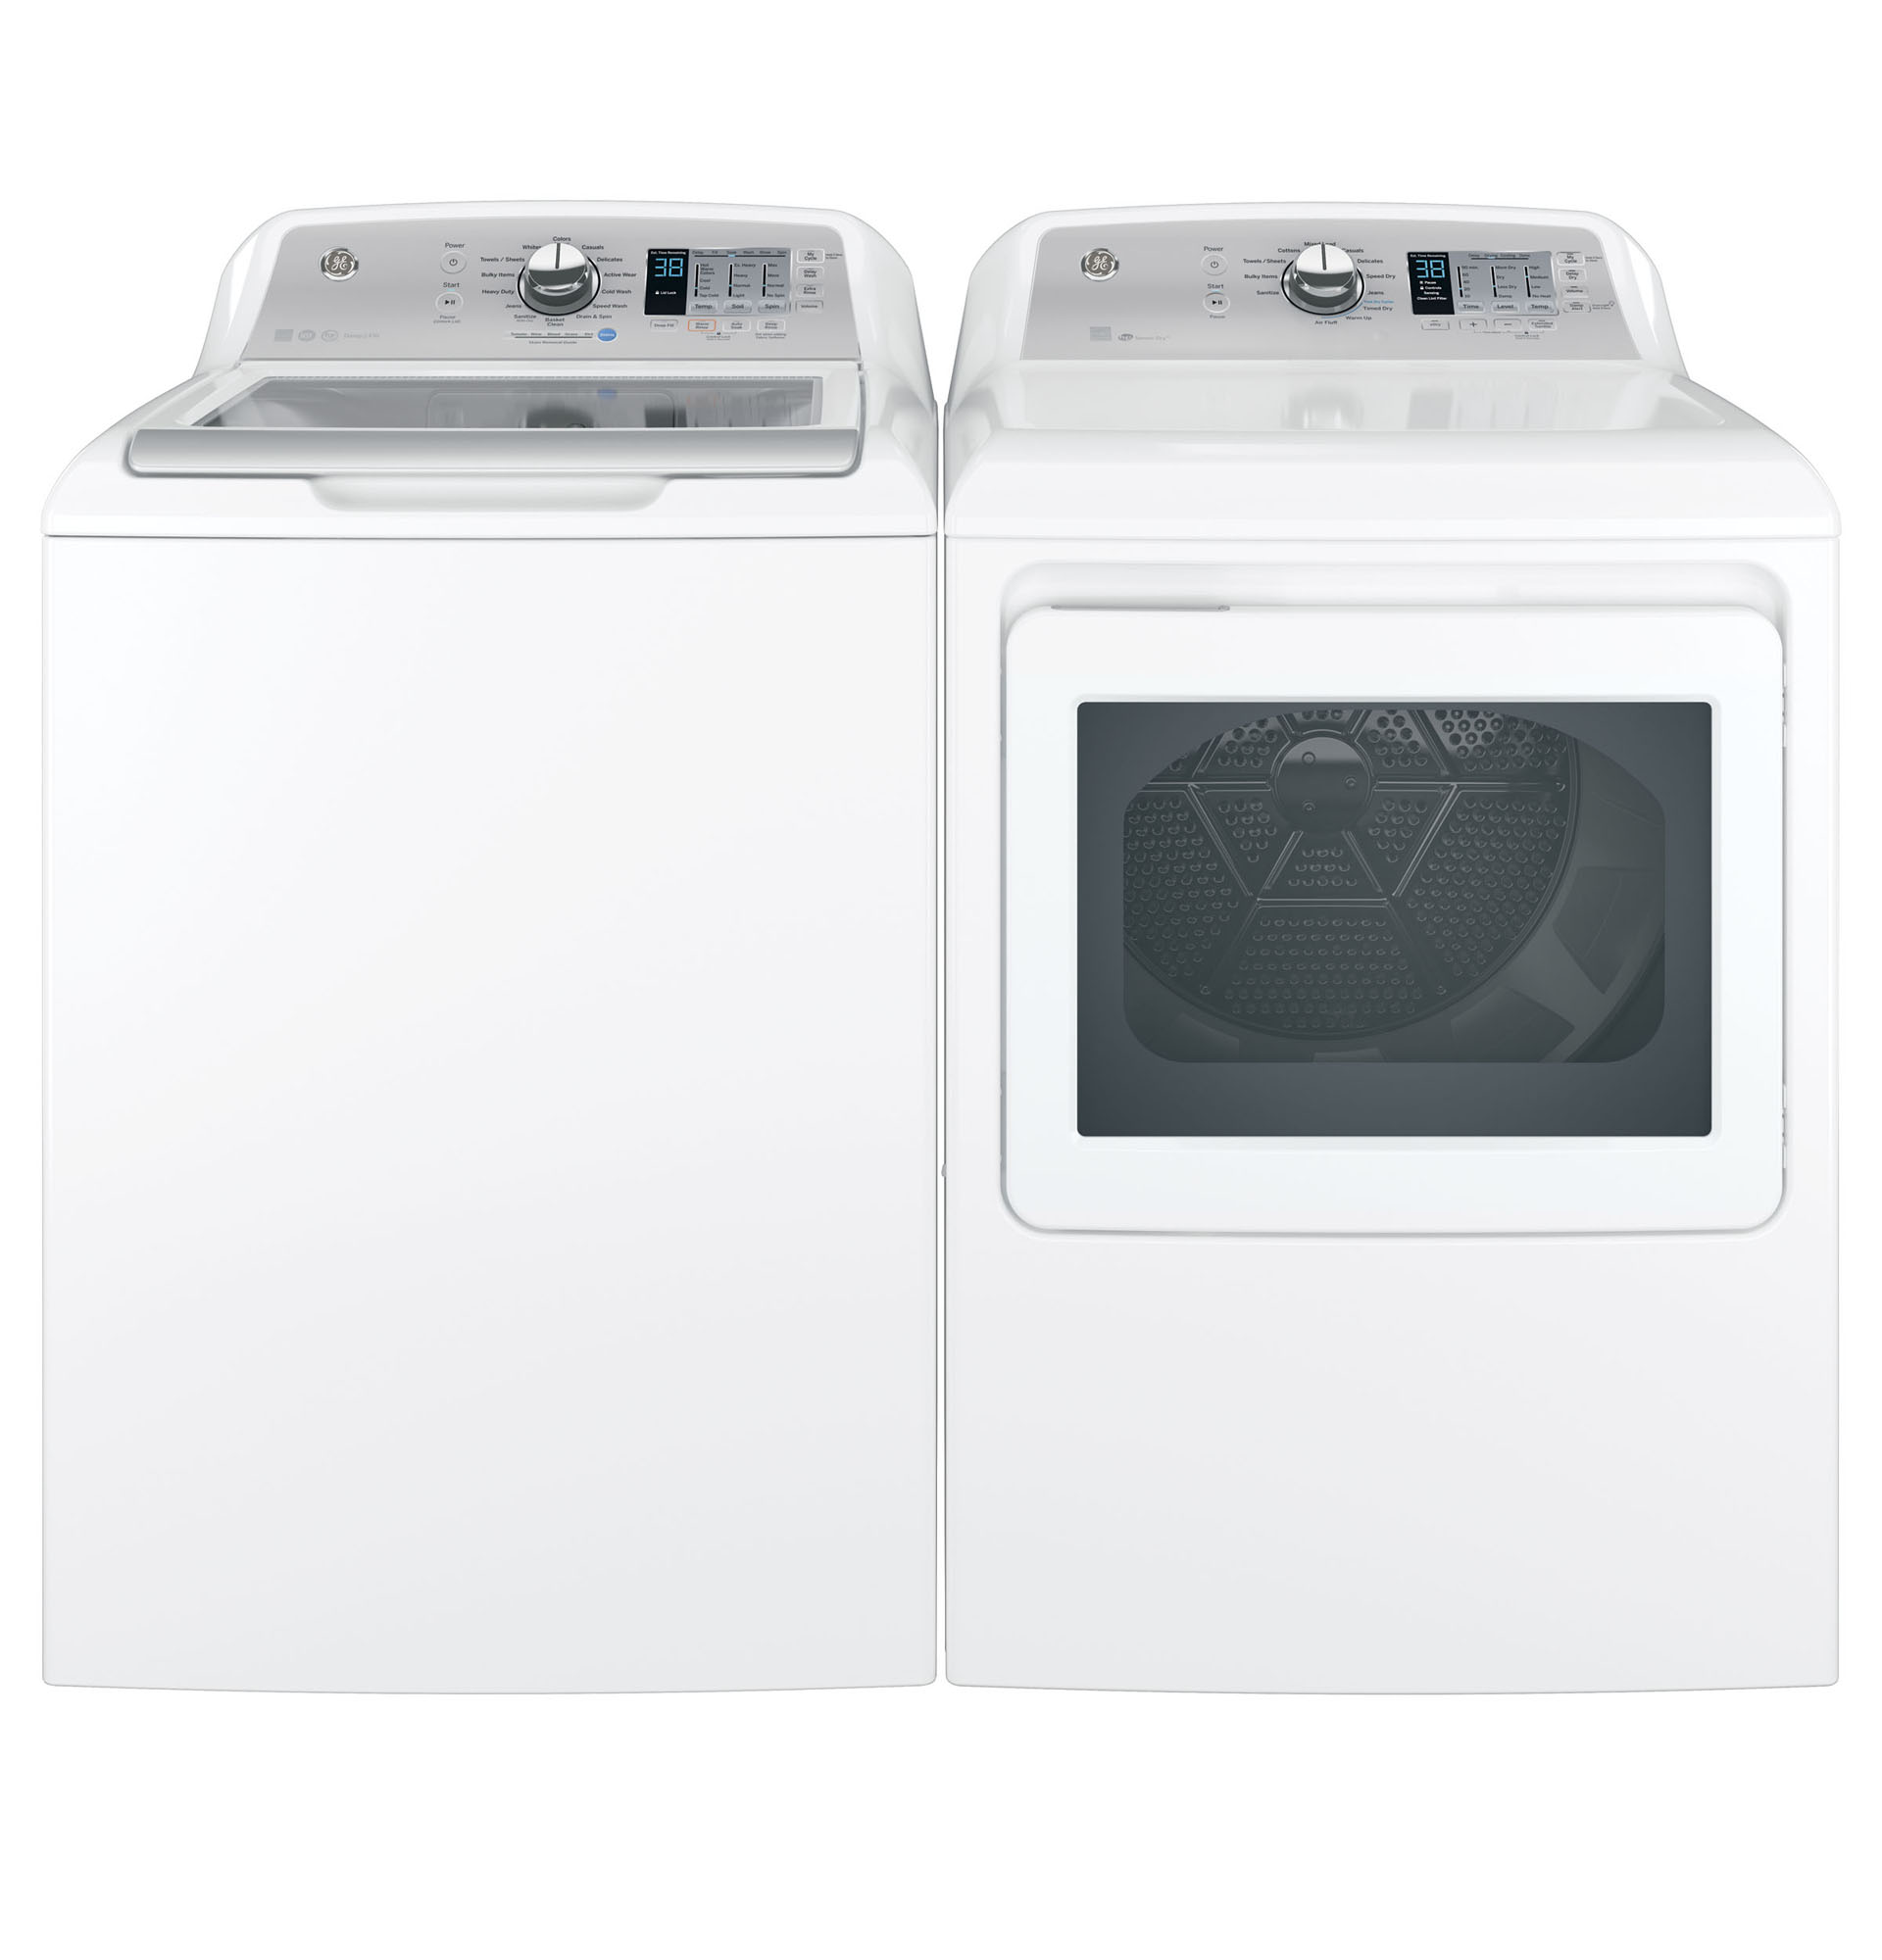 GE Appliances GTW680BSJWS 4.6 cu. ft. Top Load Washer - White